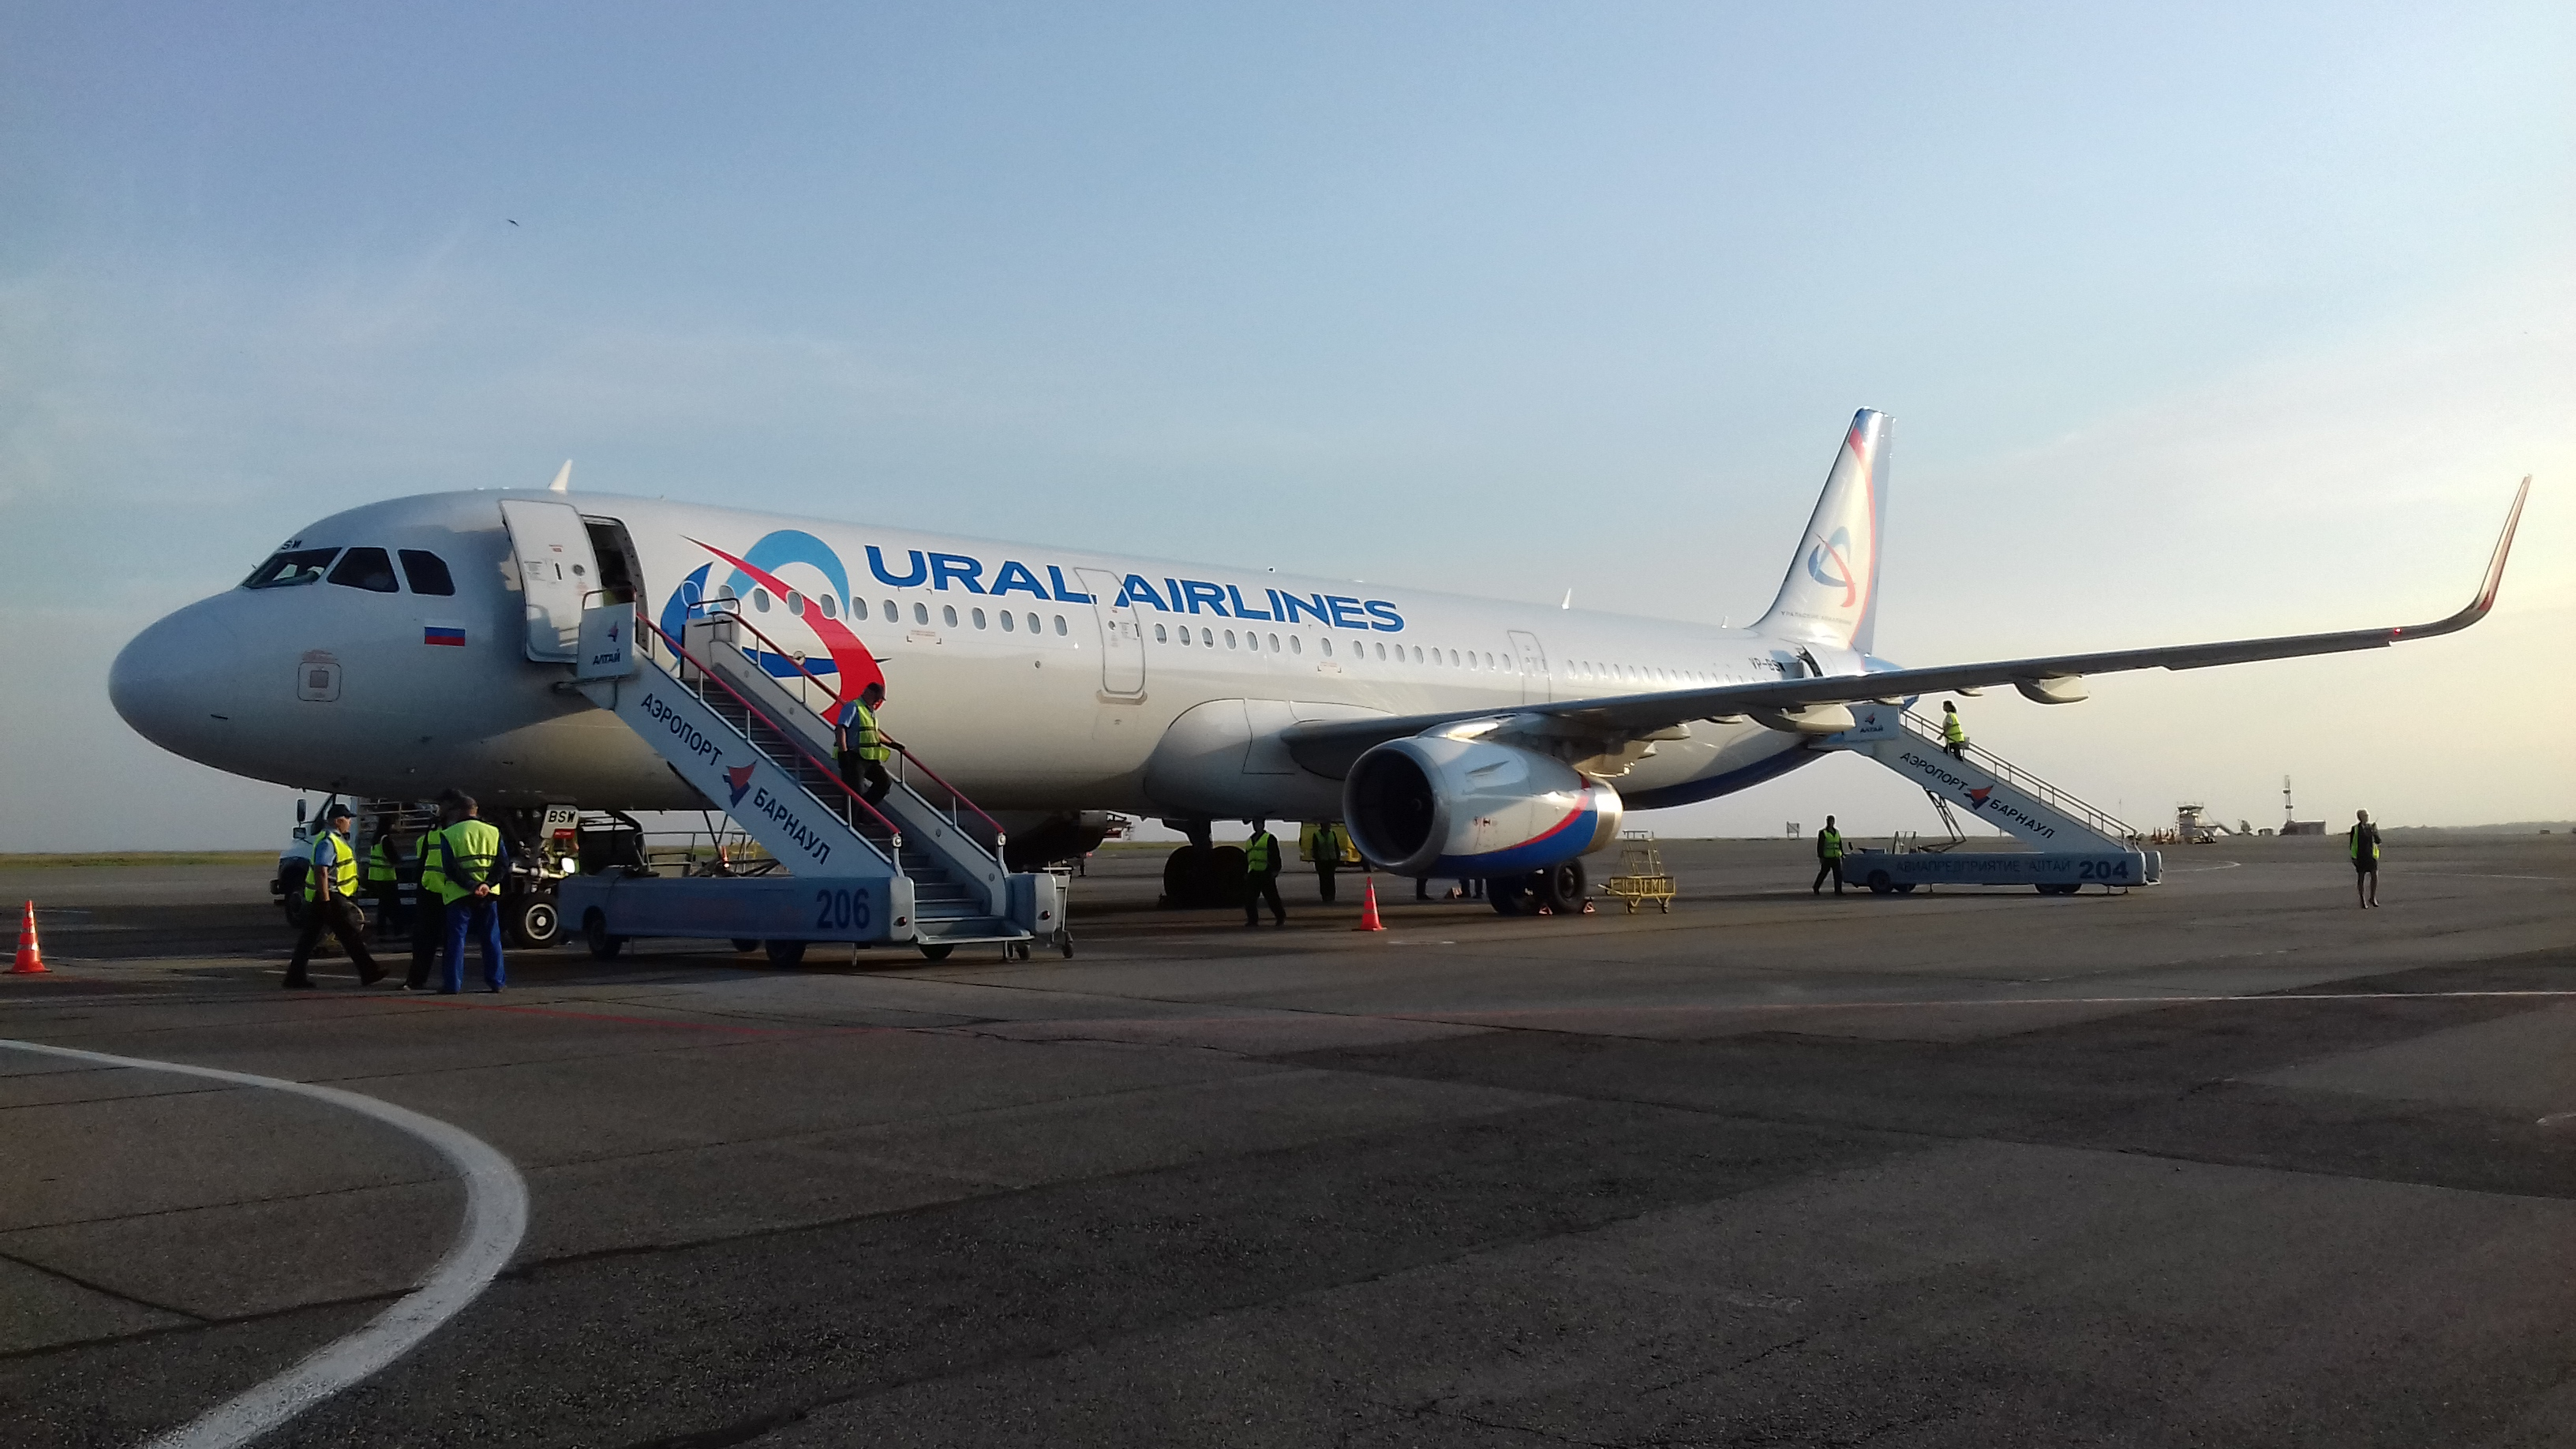 Airbus A321 VP-BSW Ural airlines. Preparing for the flight Barnaul-Domodedovo.